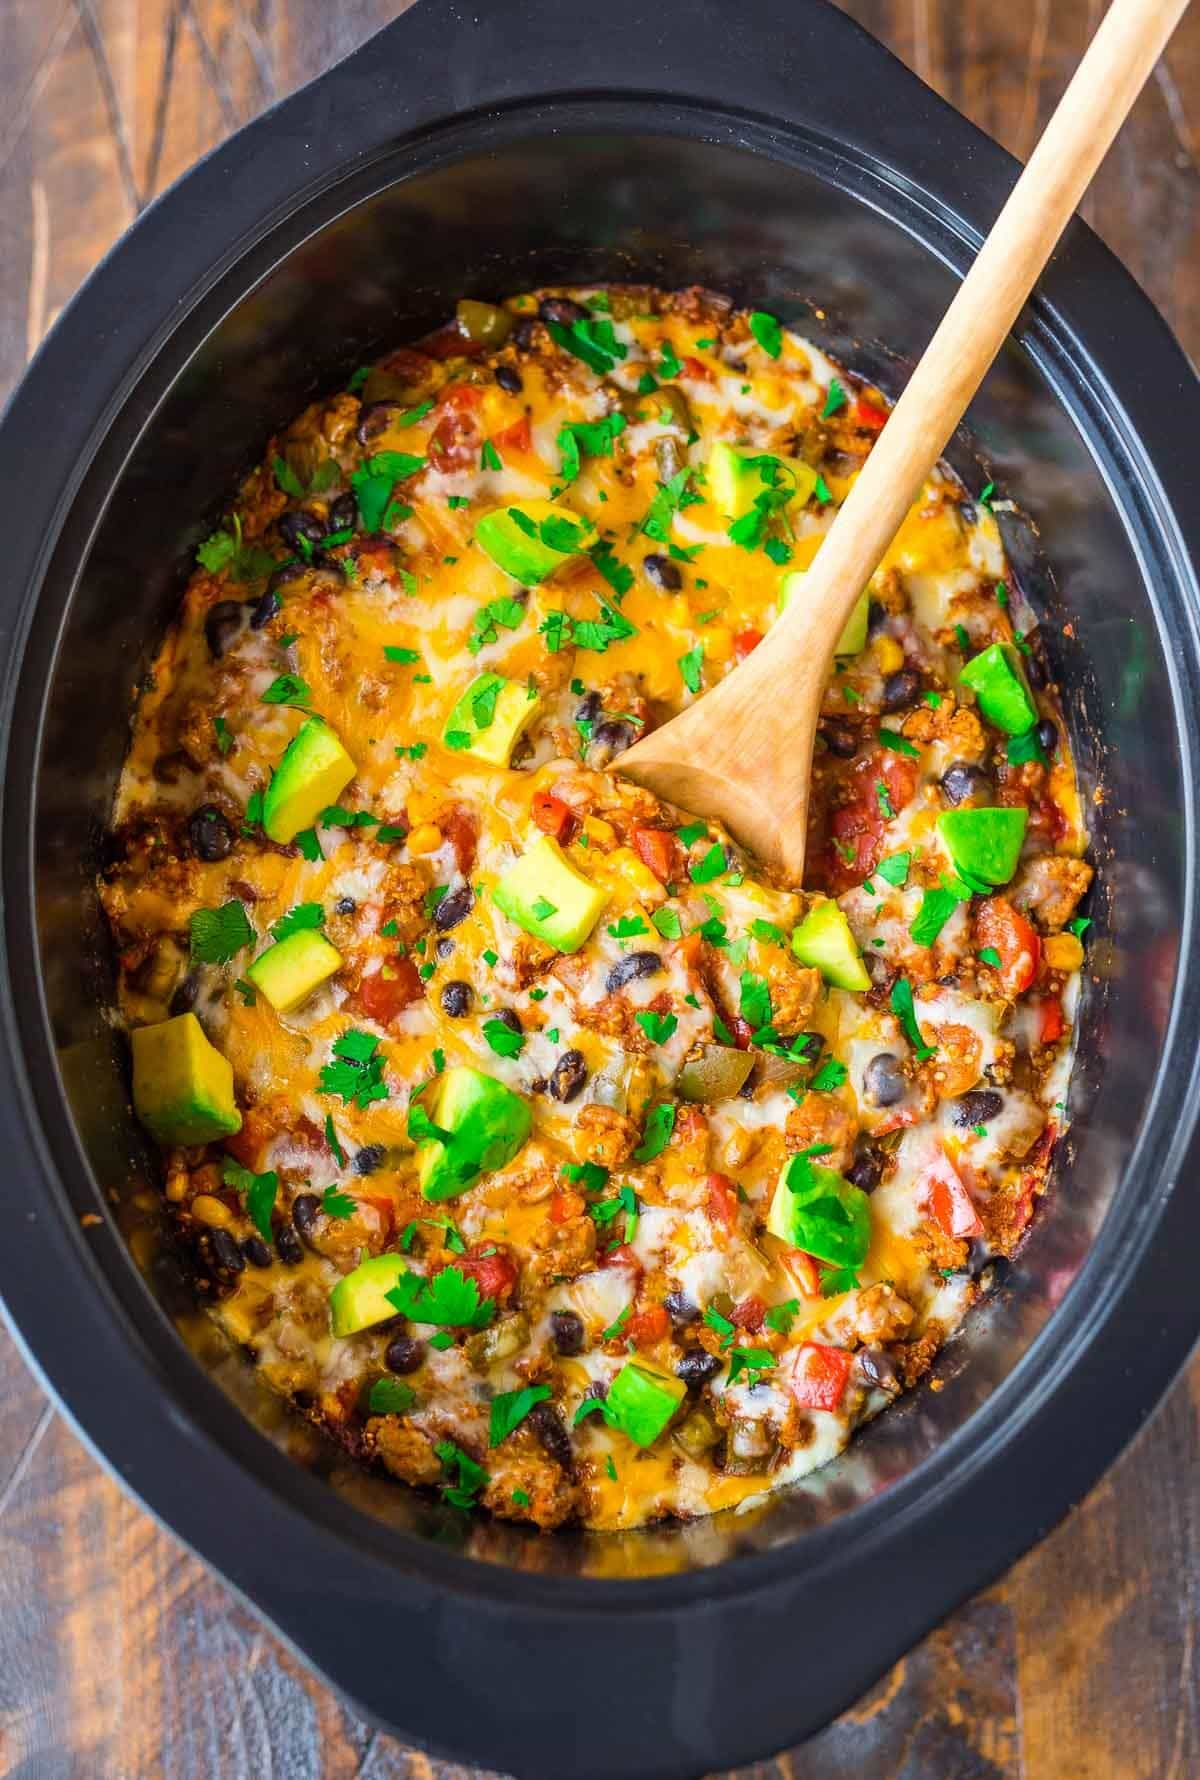 Cheesy Healthy Crock Pot Mexican Casserole with quinoa, black beans, fresh veggies, and ground chicken or turkey. Easy DELICIOUS comfort food! {gluten free} Recipe at wellplated.com | @wellplated